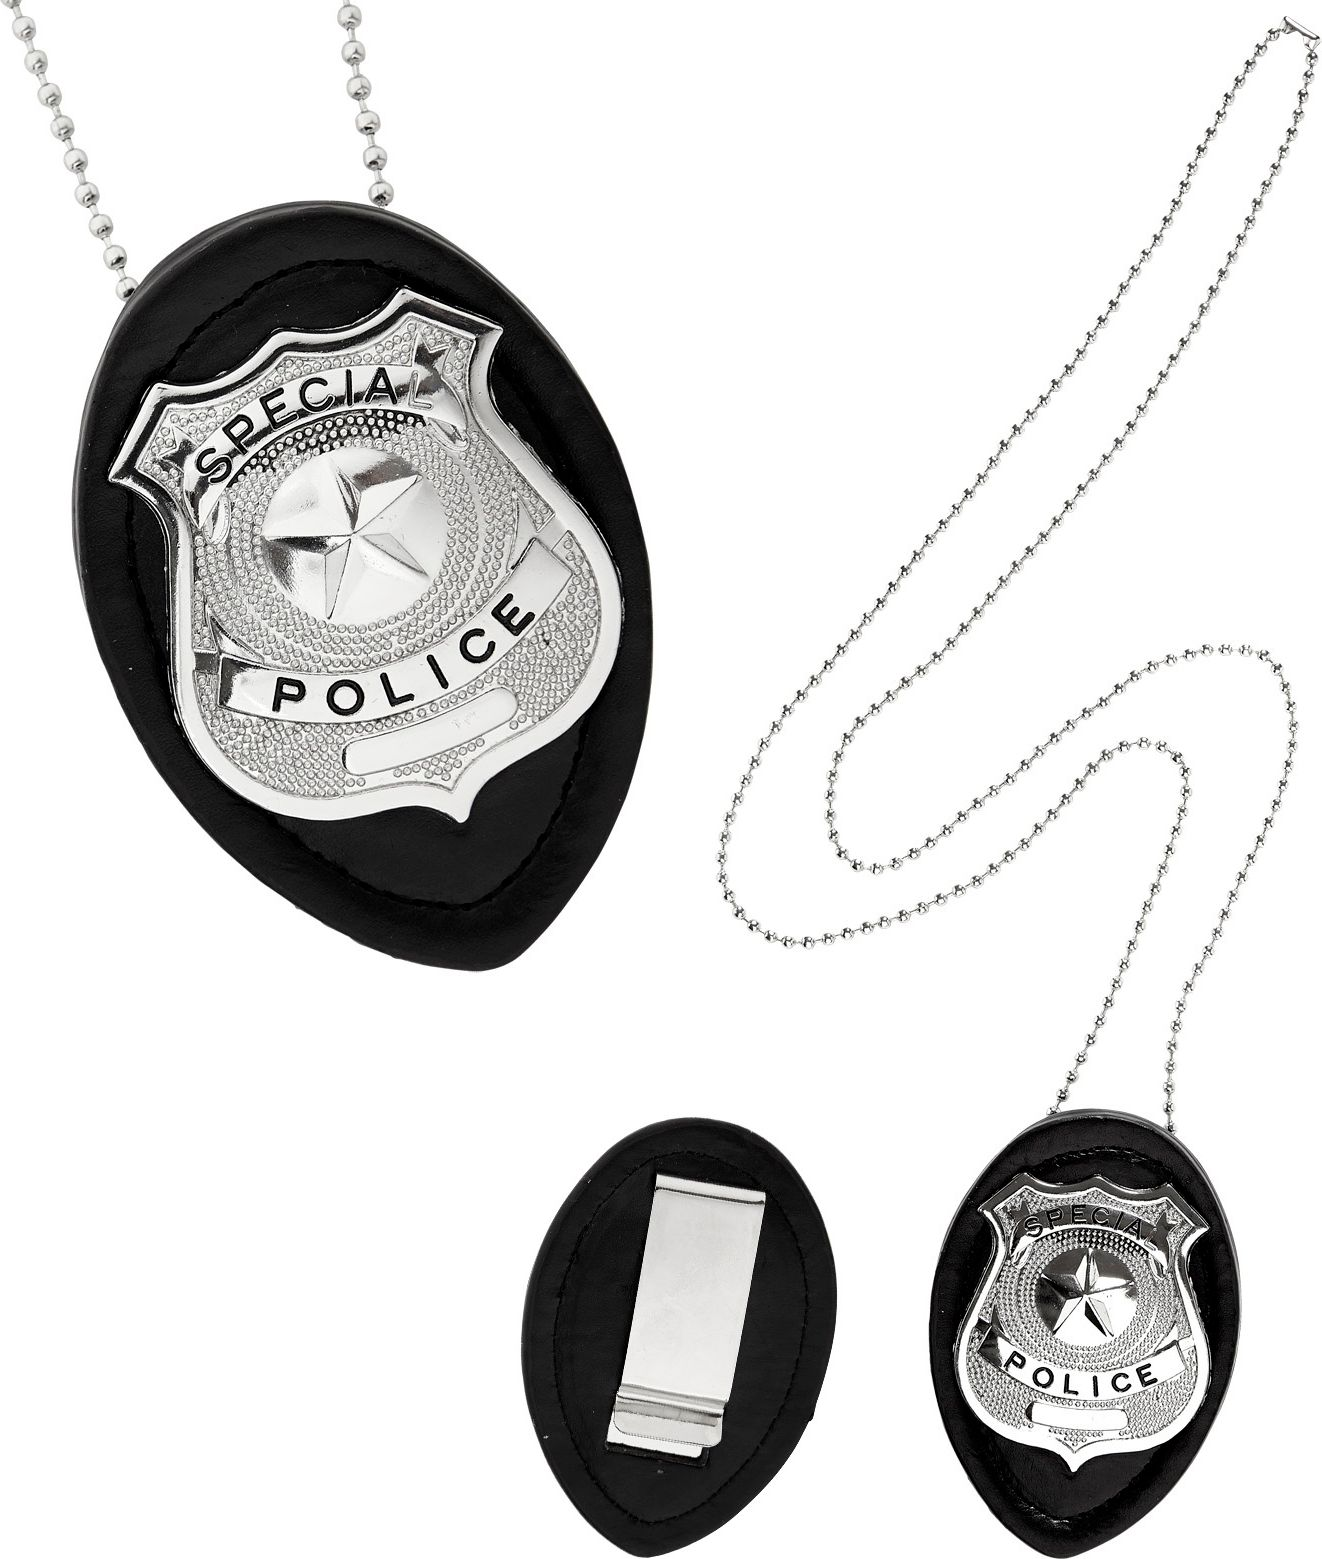 Politie ster ketting